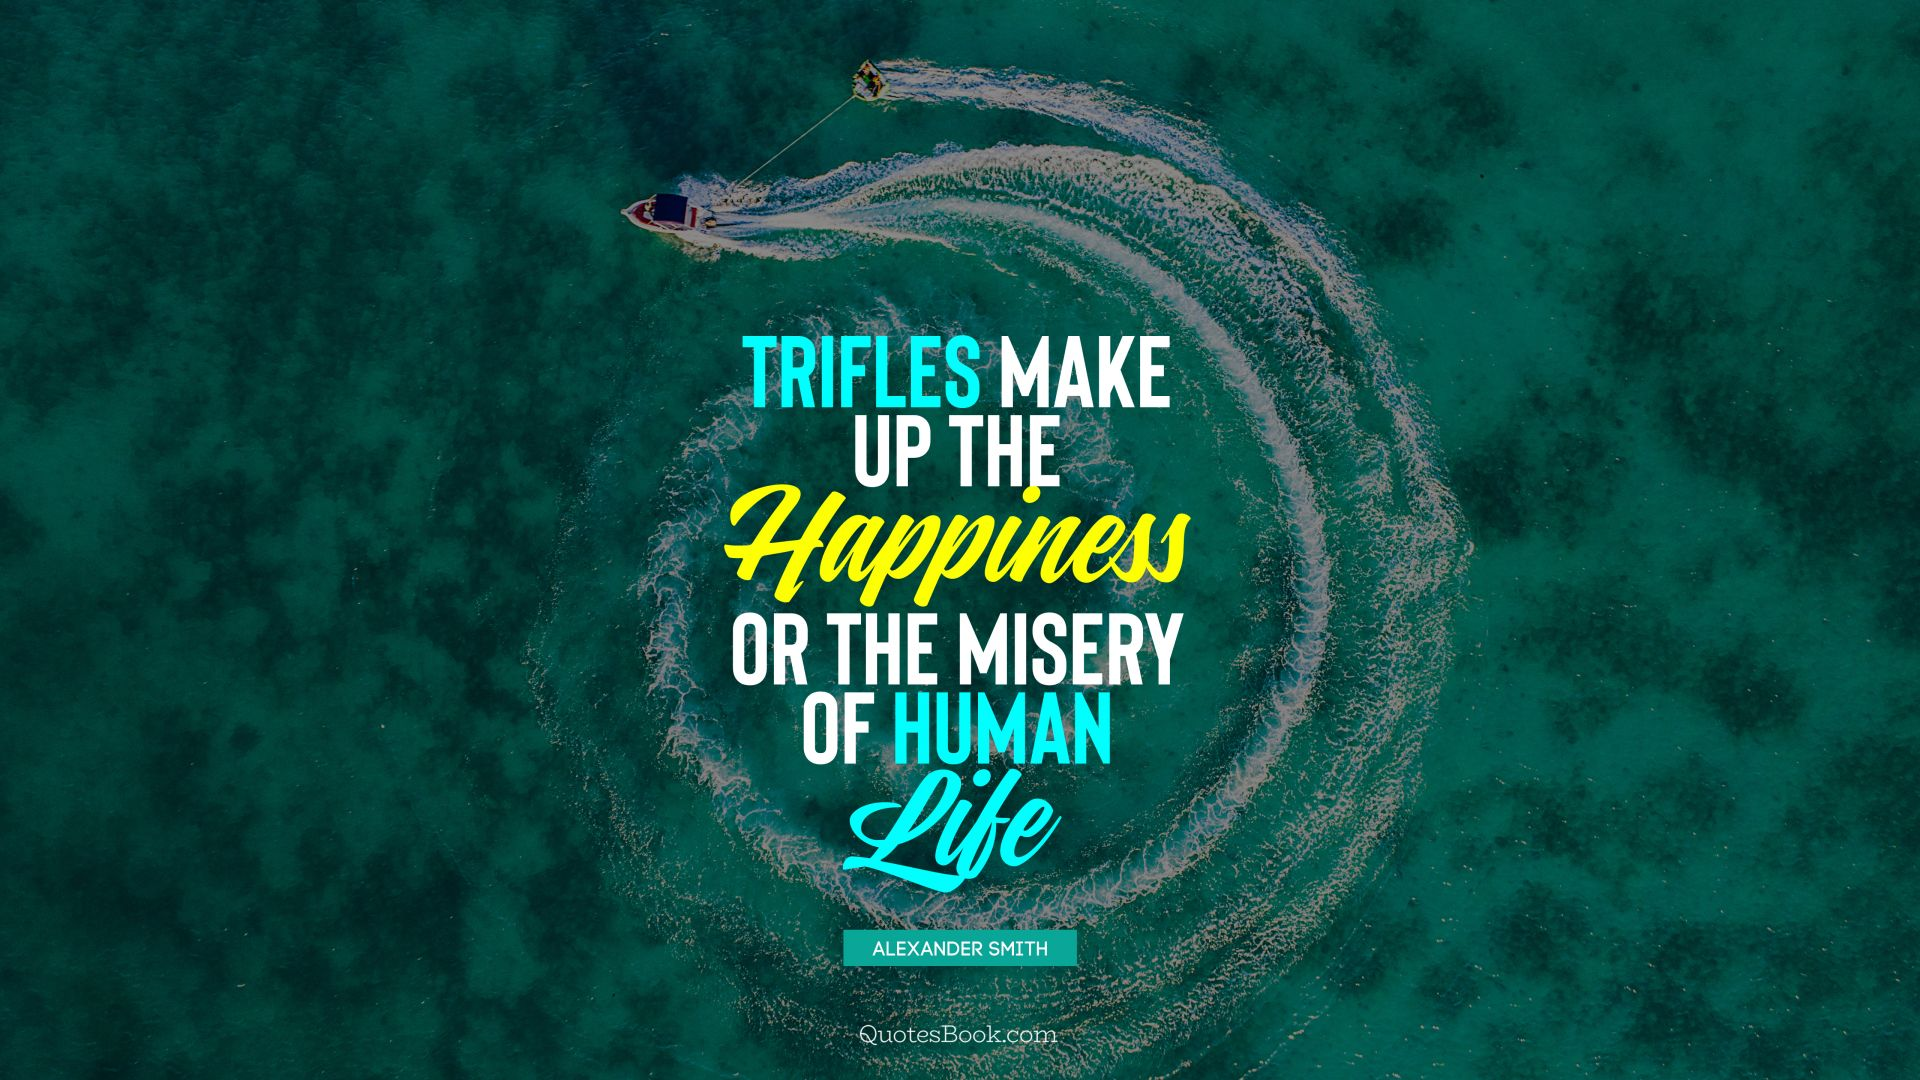 Trifles make up the happiness or the misery of human life. - Quote by Alexander Smith